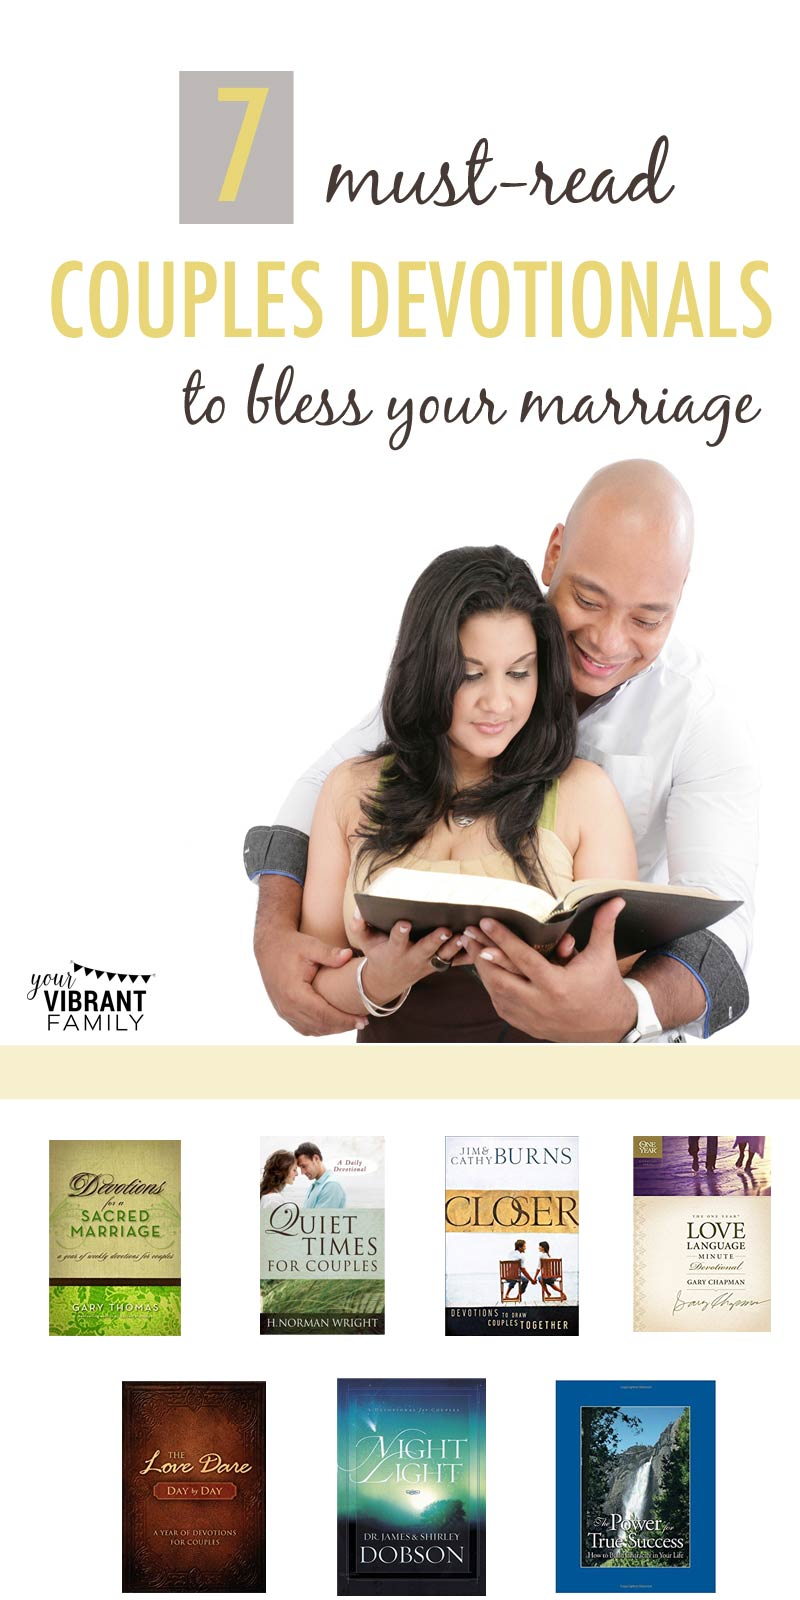 couples devotions | couples devotionals | couples Bible devotions | couples Bible study